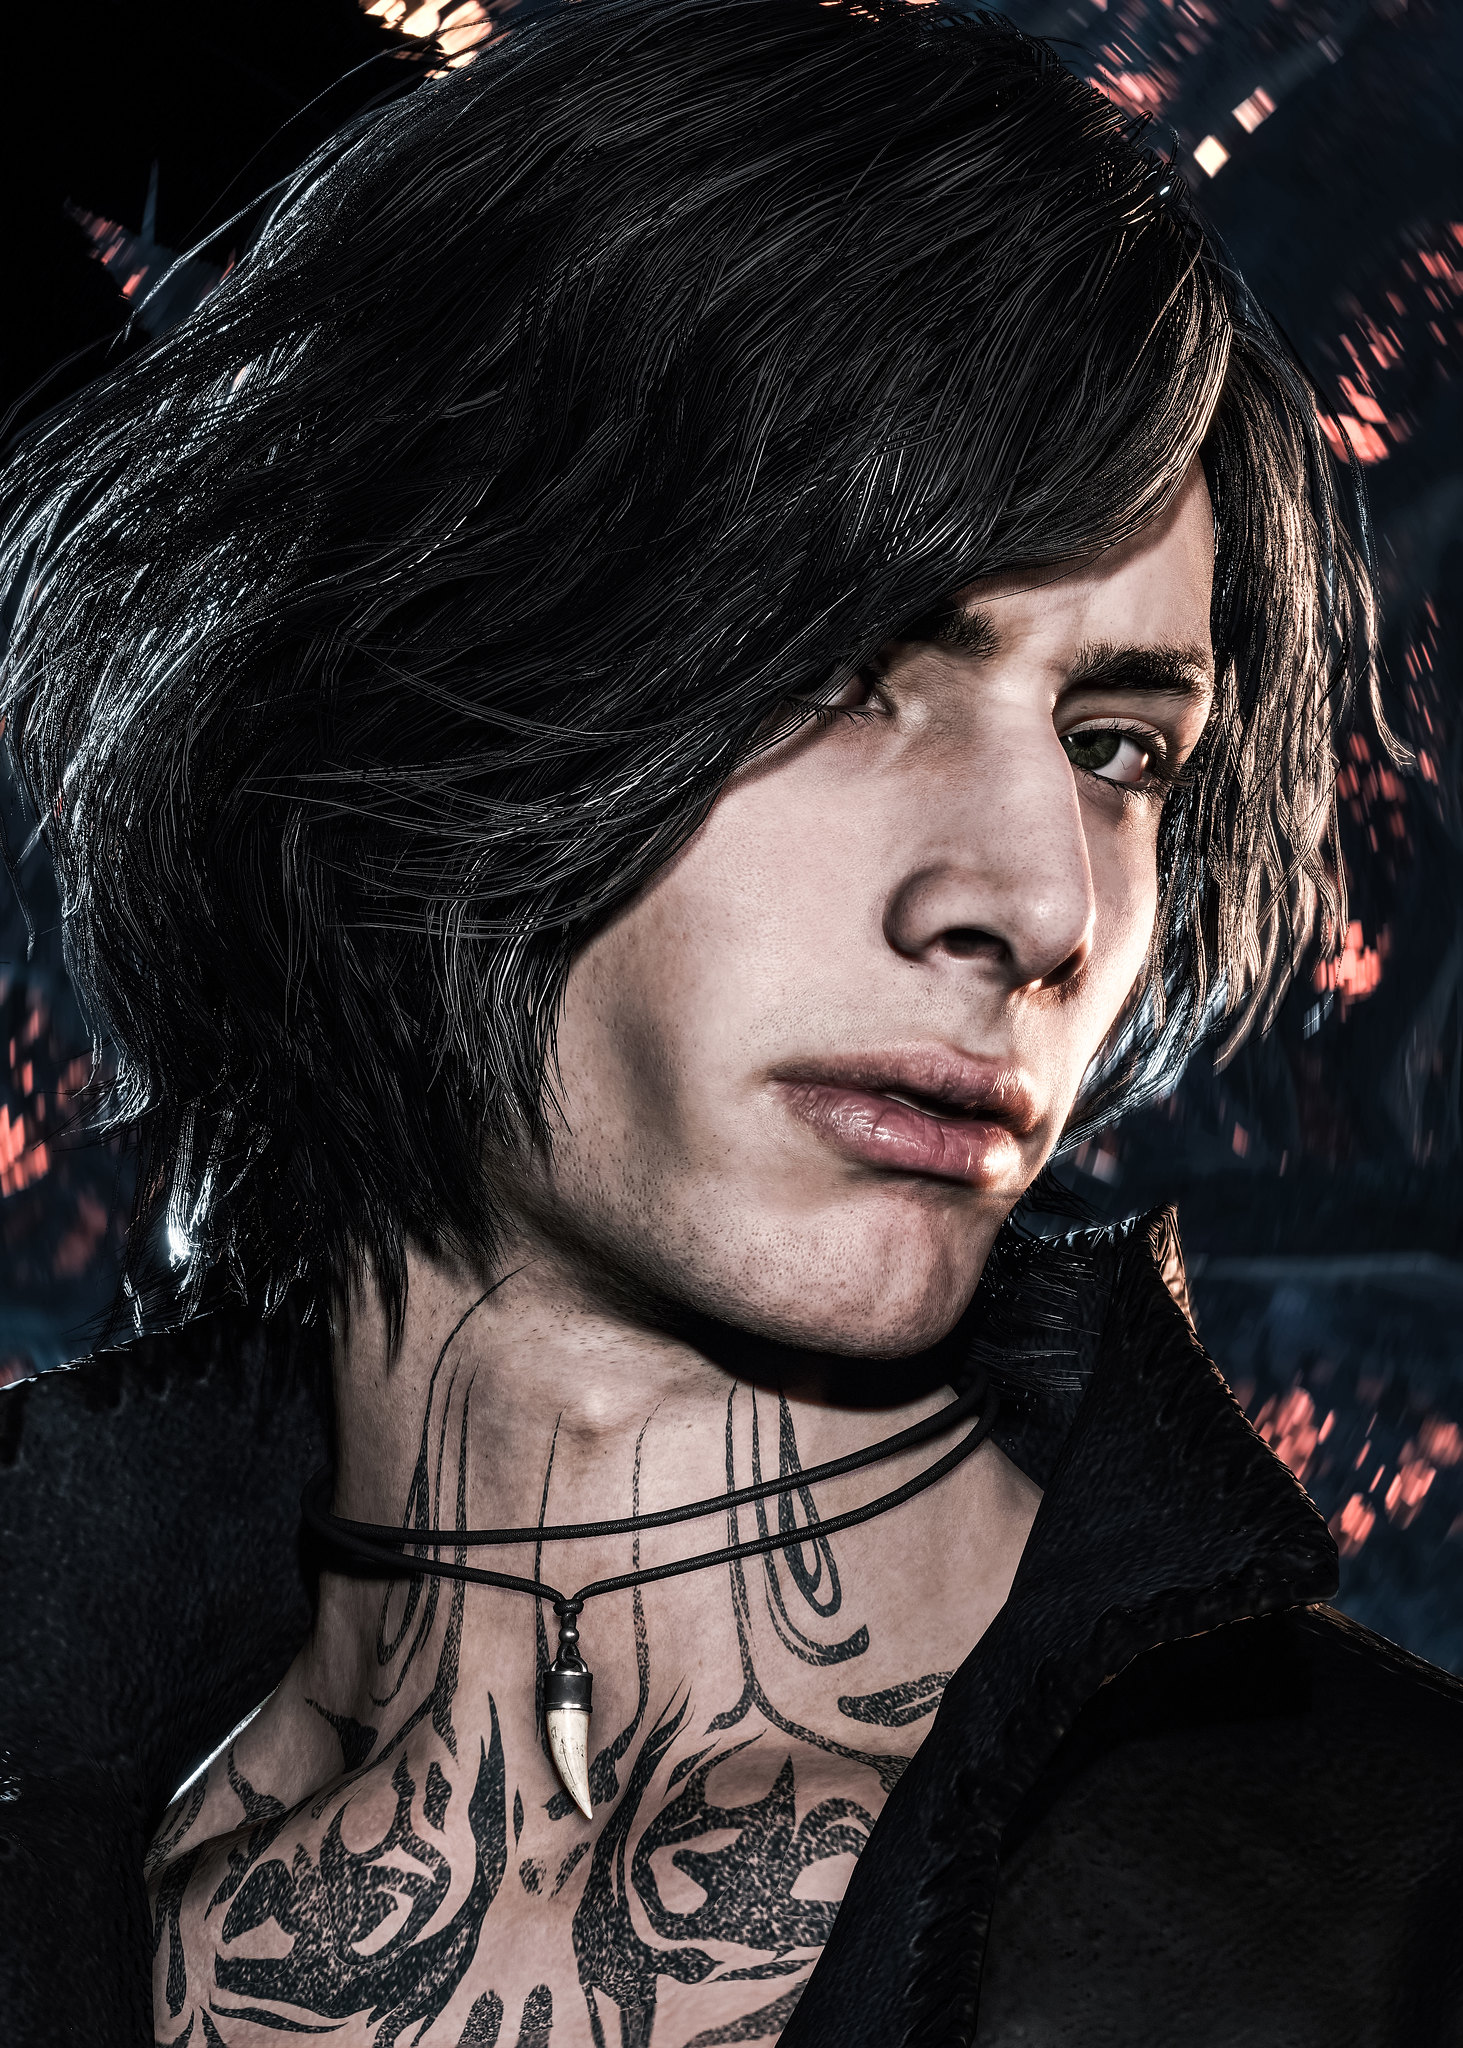 48354124487_fbfcef0496_k.jpg - Devil May Cry 5